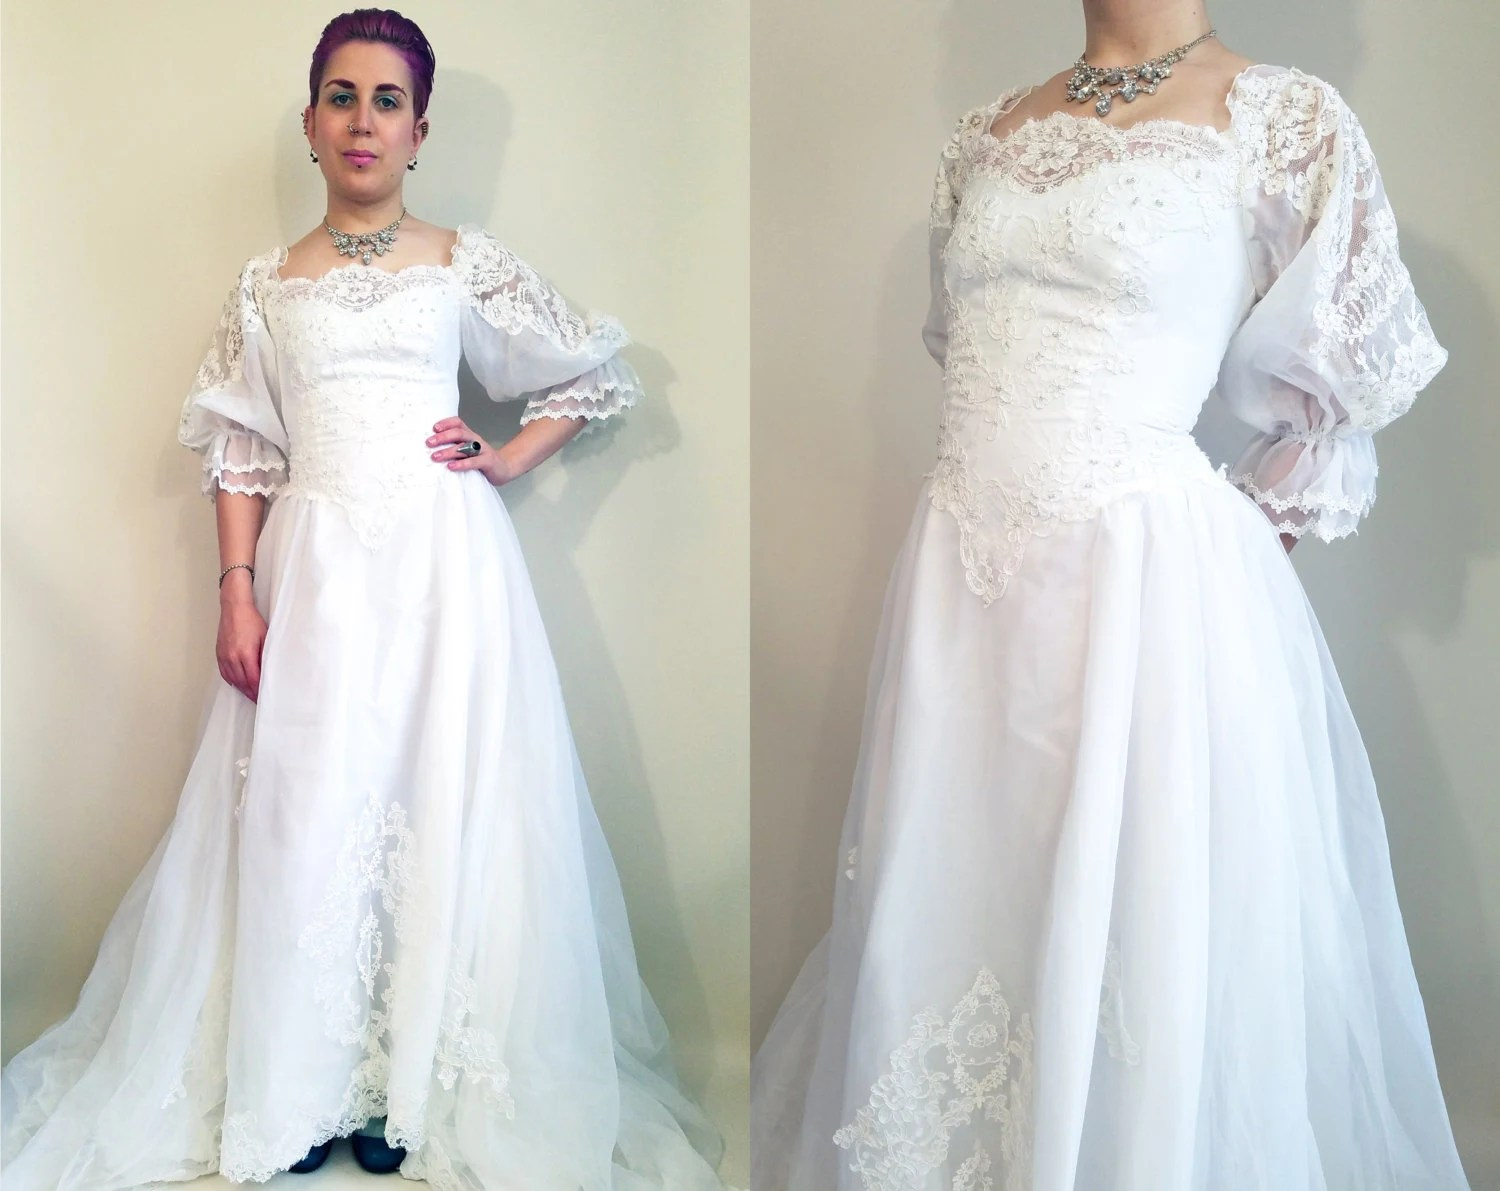 80s Wedding Dress Vintage Wedding Dress 80s Victorian Princess